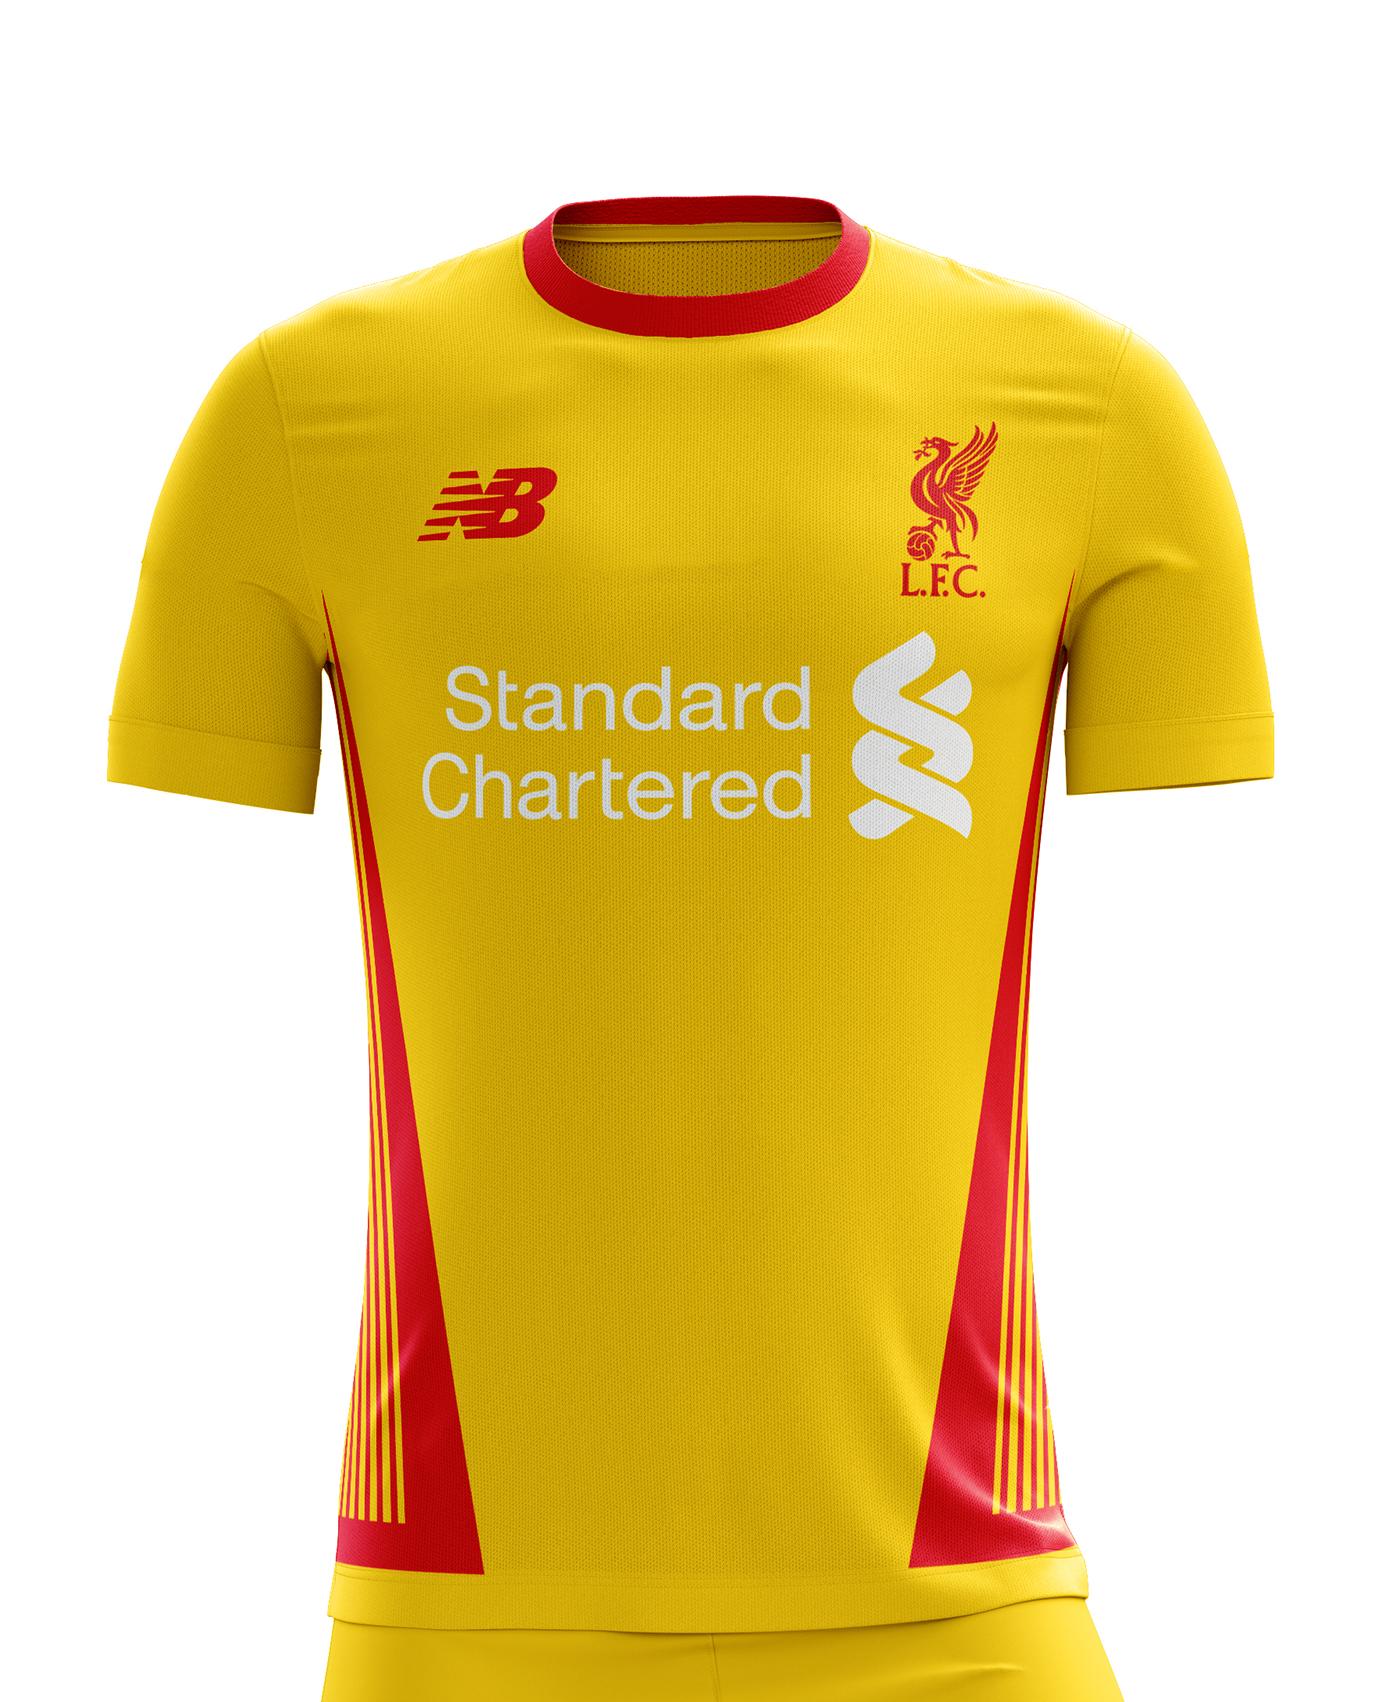 a639a2118 I designed football kits for FC Liverpool for the upcoming season 18 19.